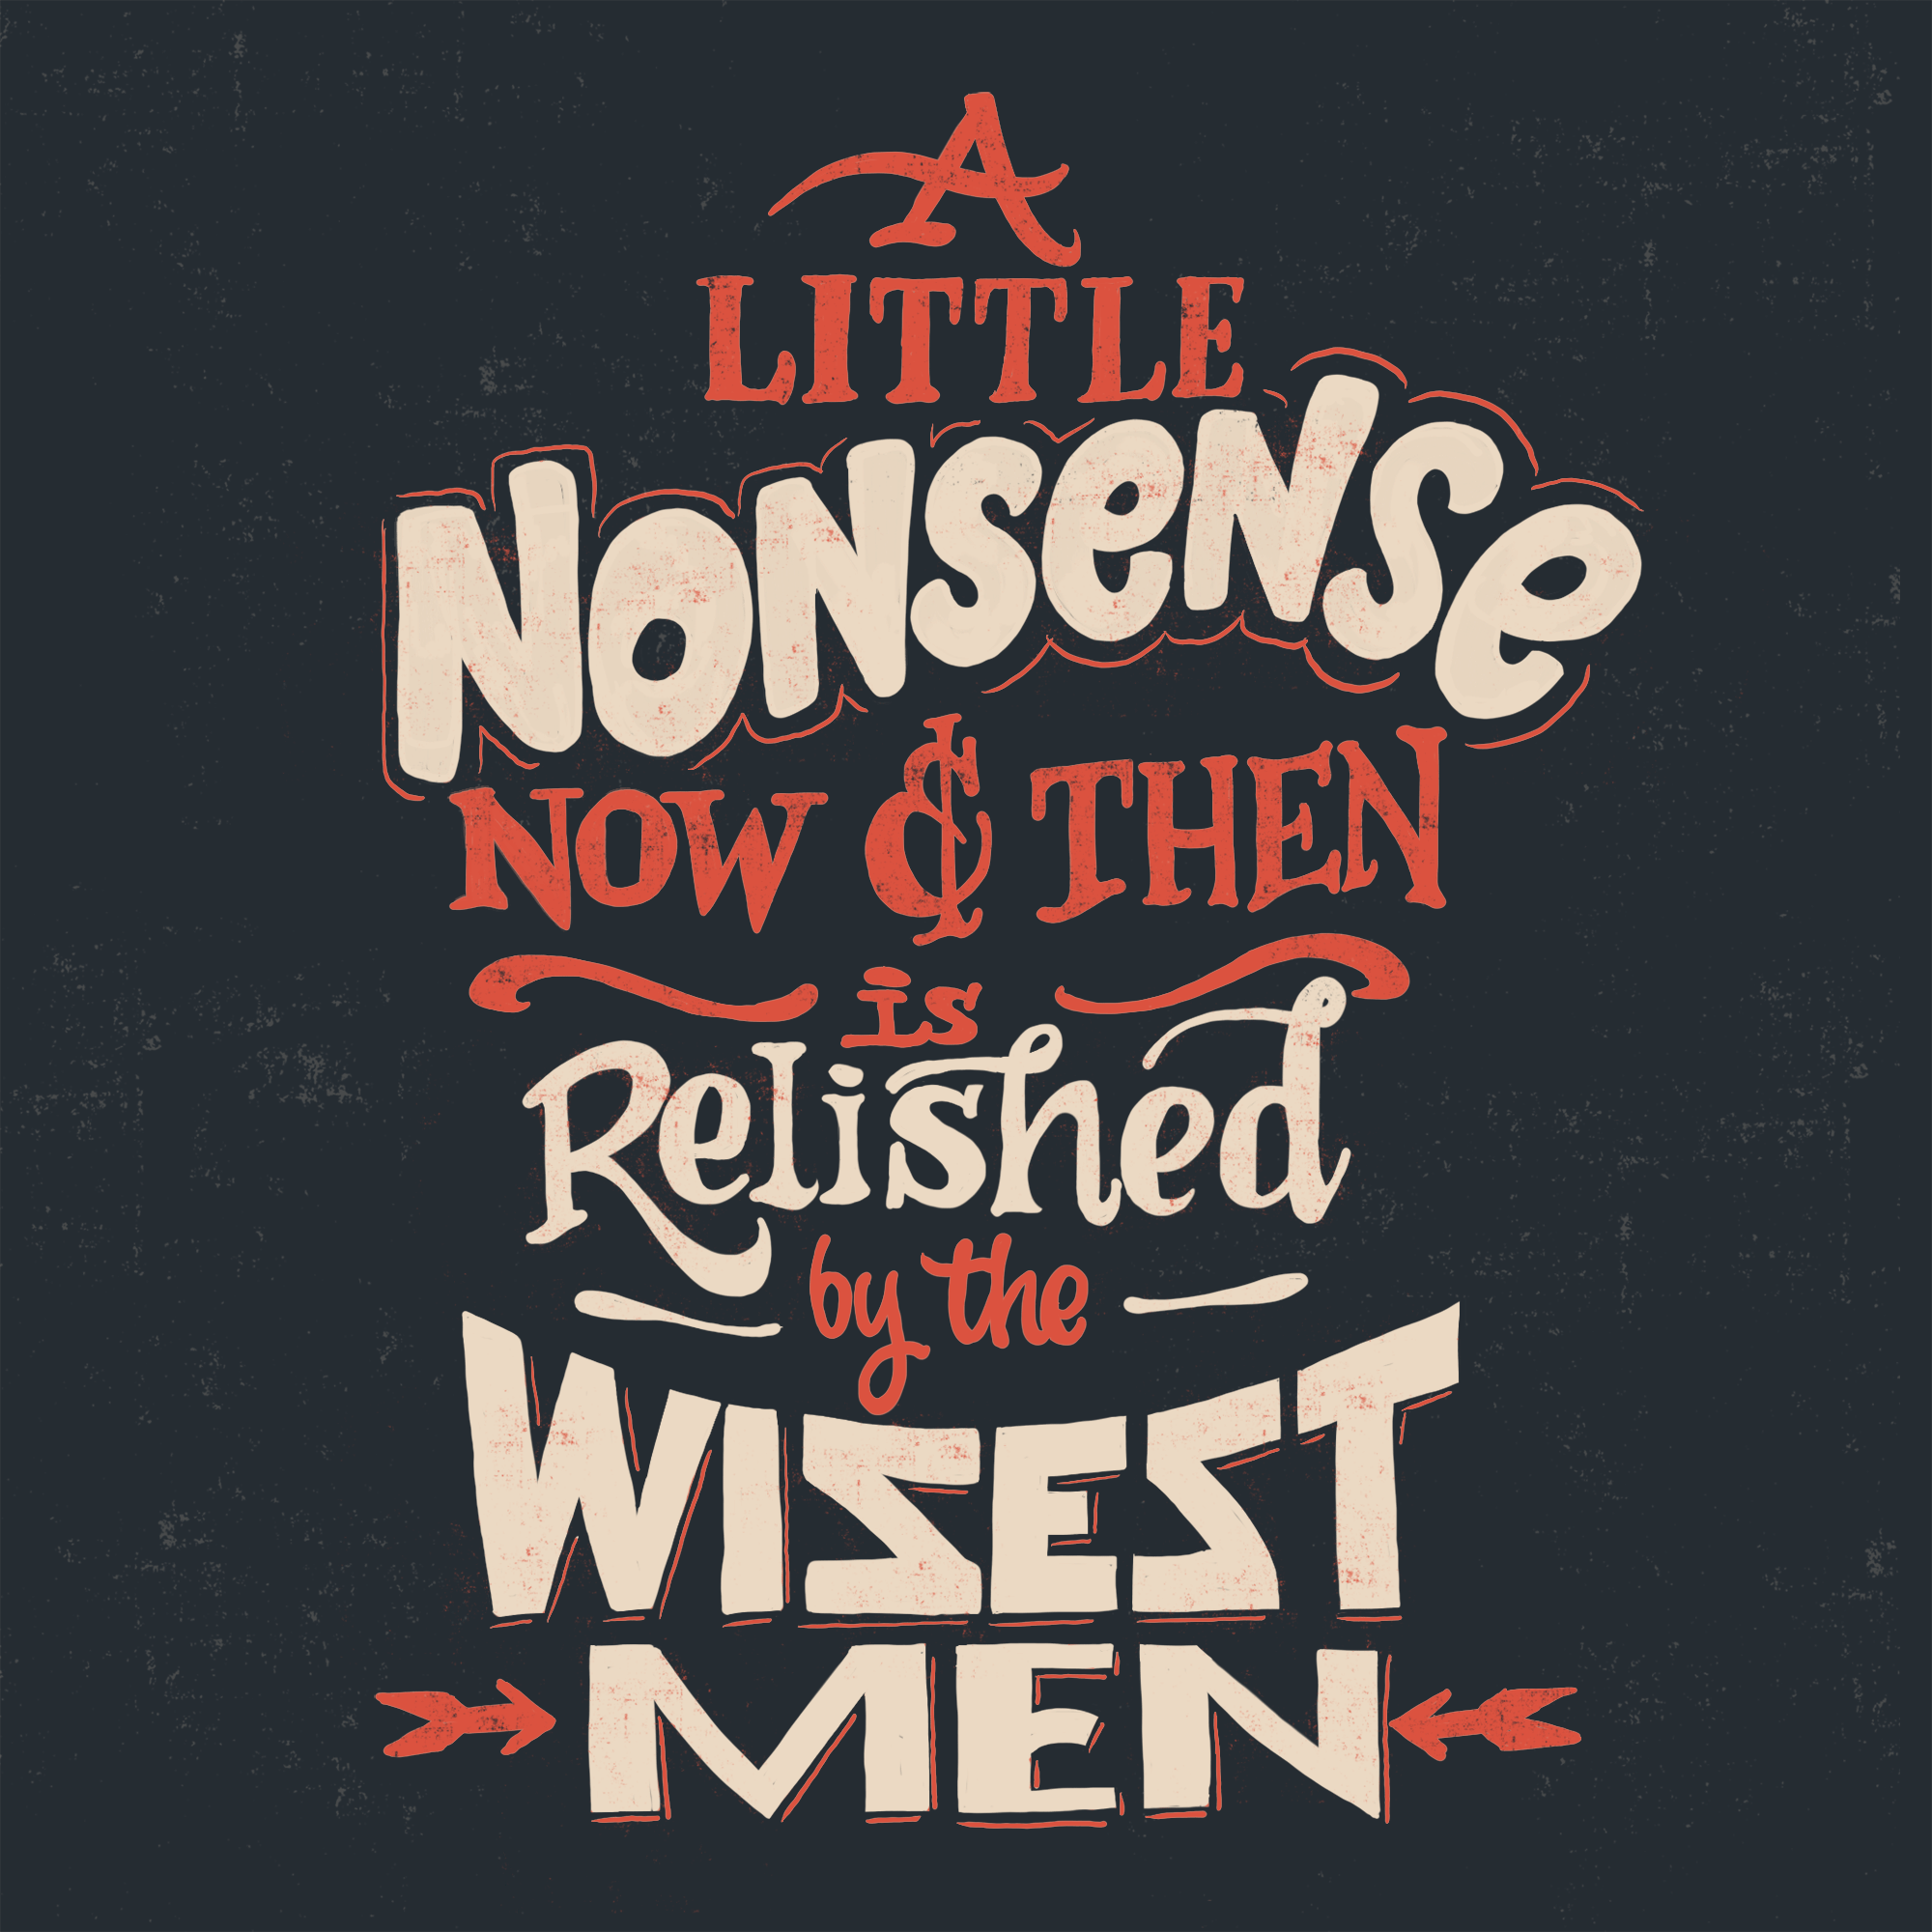 a little nonsense wonka quote.png